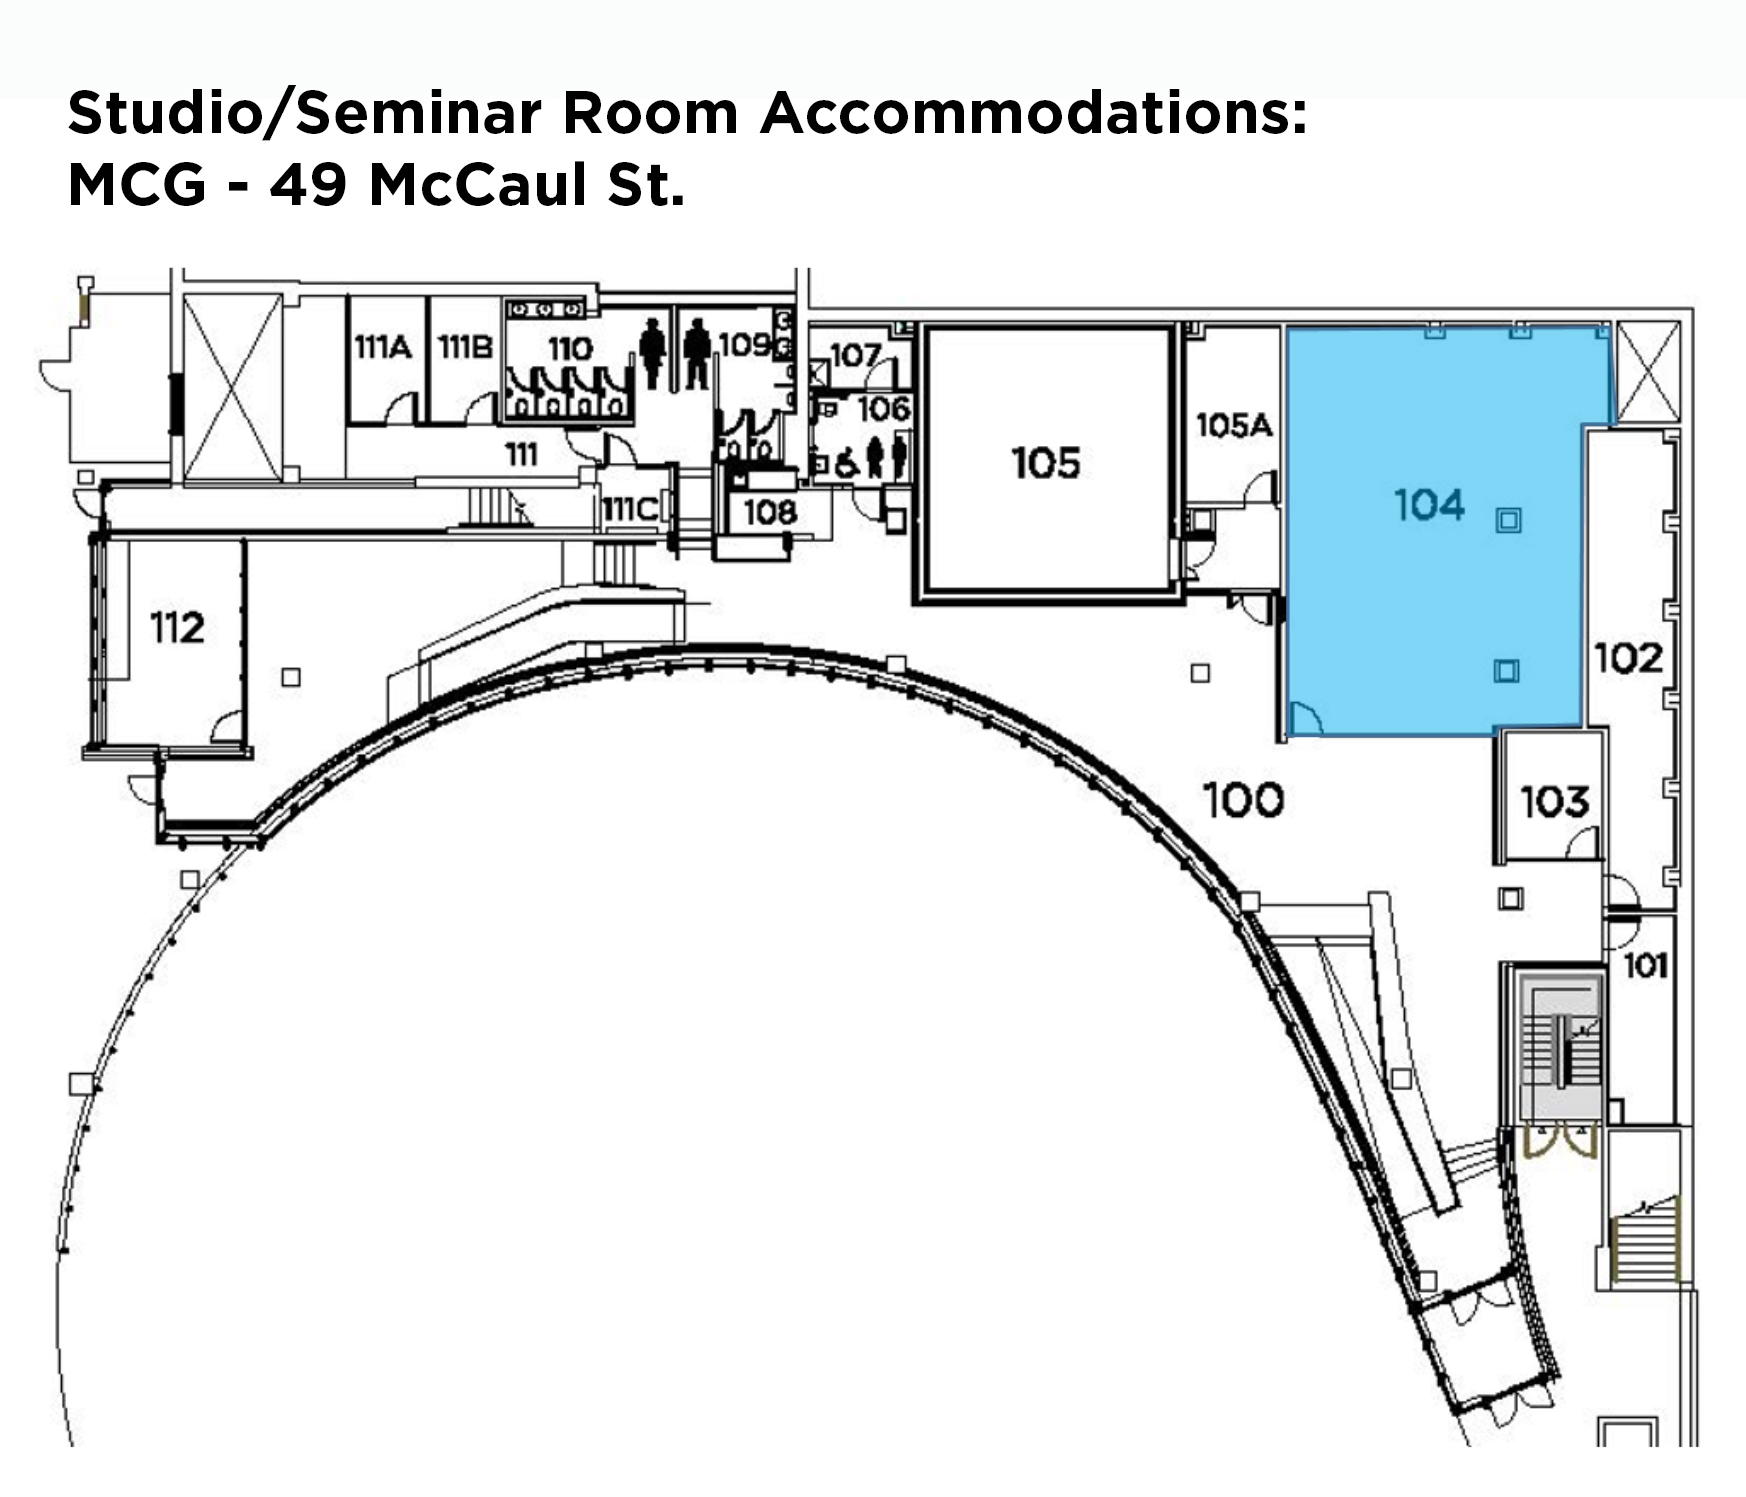 Studio/Seminar accommodations: MCG 49 McCaul